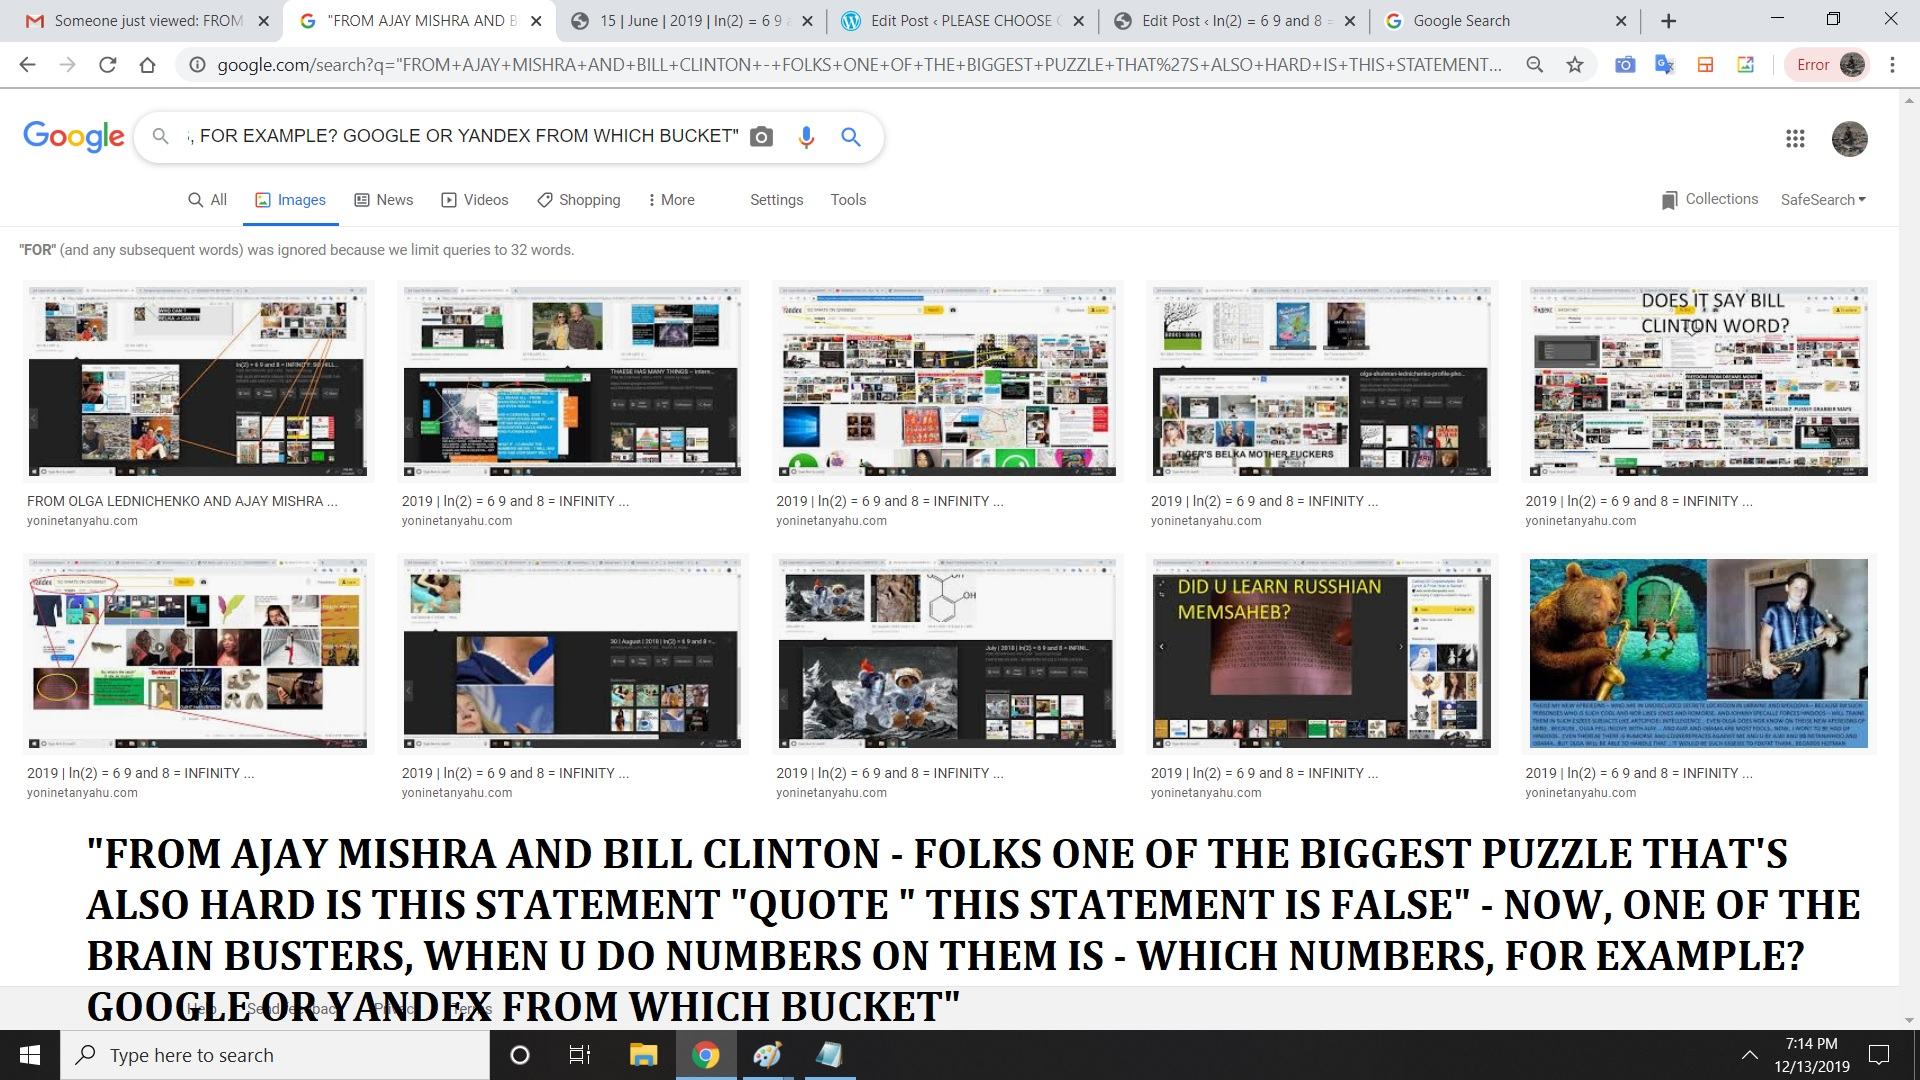 FROM AJAY MISHRA AND BILL CLINTON - FOLKS ONE OF THE BIGGEST PUZZLE THAT'S ALSO HARD IS THIS STATEMENT QUOTE THIS STATEMENT IS FALSE - NOW, ONE OF THE BRAIN BUSTERS, WHEN U DO NUMBERS ON